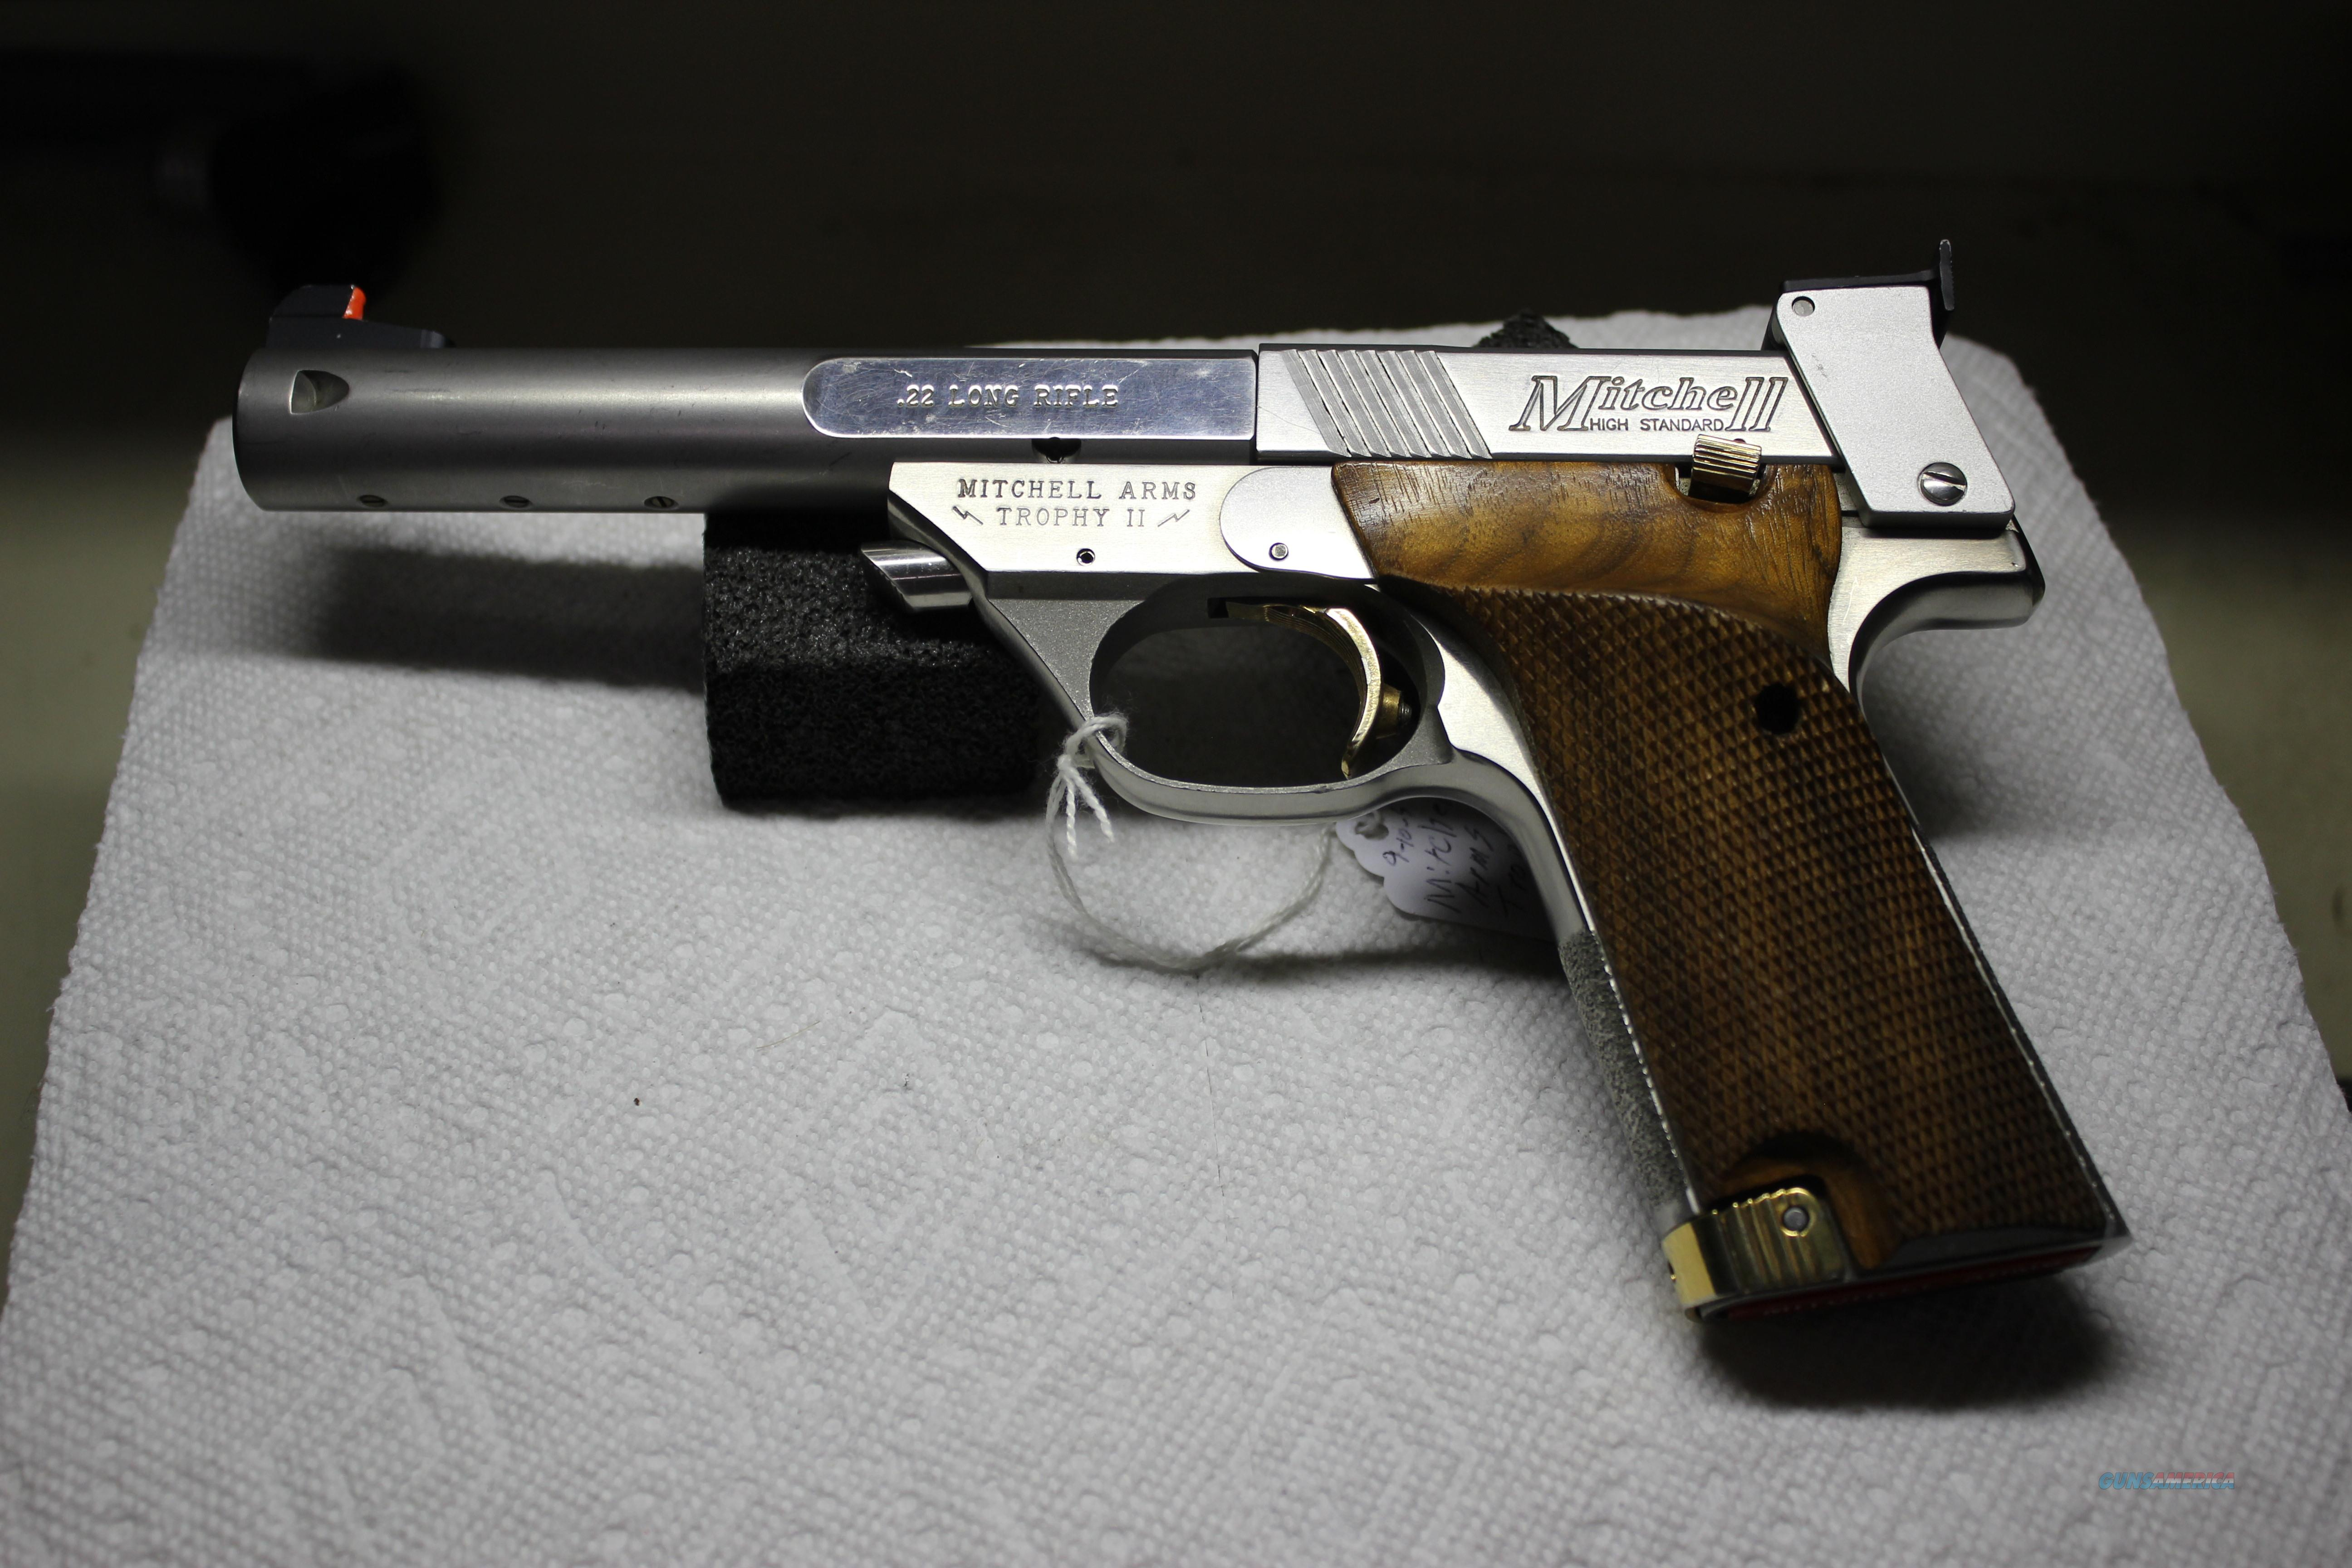 MITCHELL ARMS TROPHY II  Guns > Pistols > Mitchell Arms Pistols